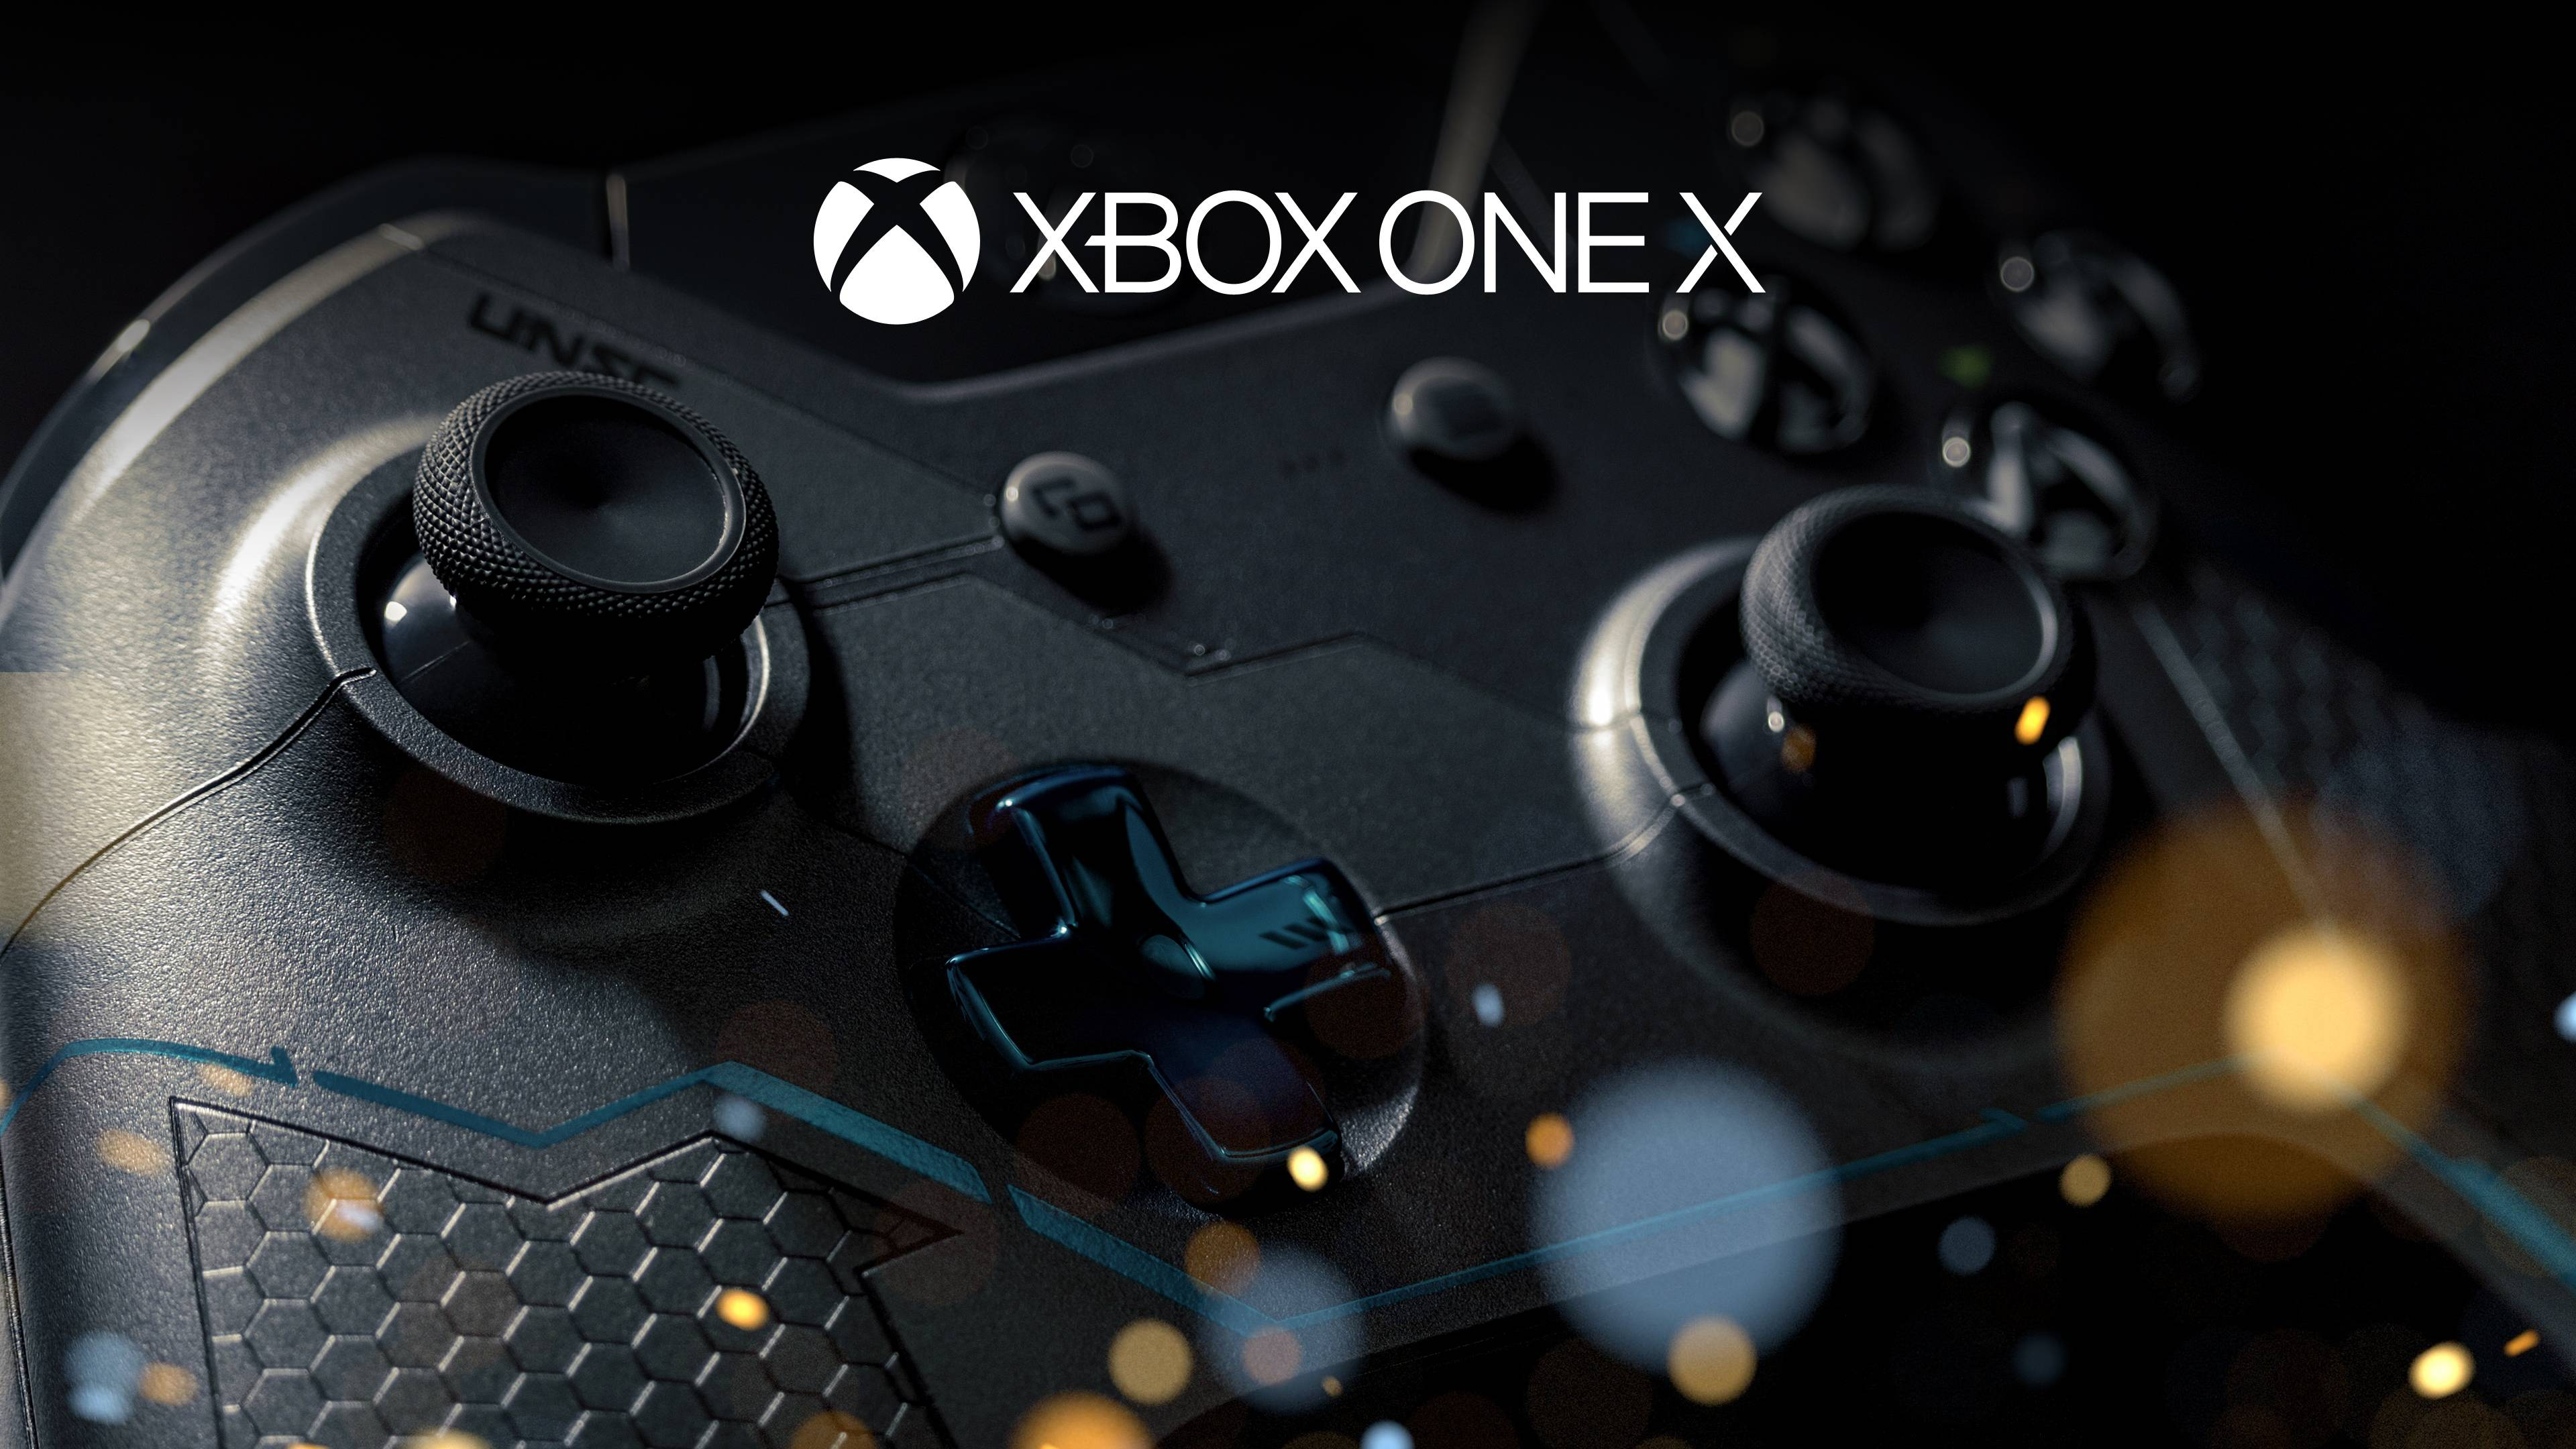 3840x2160 Xbox One X 4K Wallpapers | HD Wallpapers